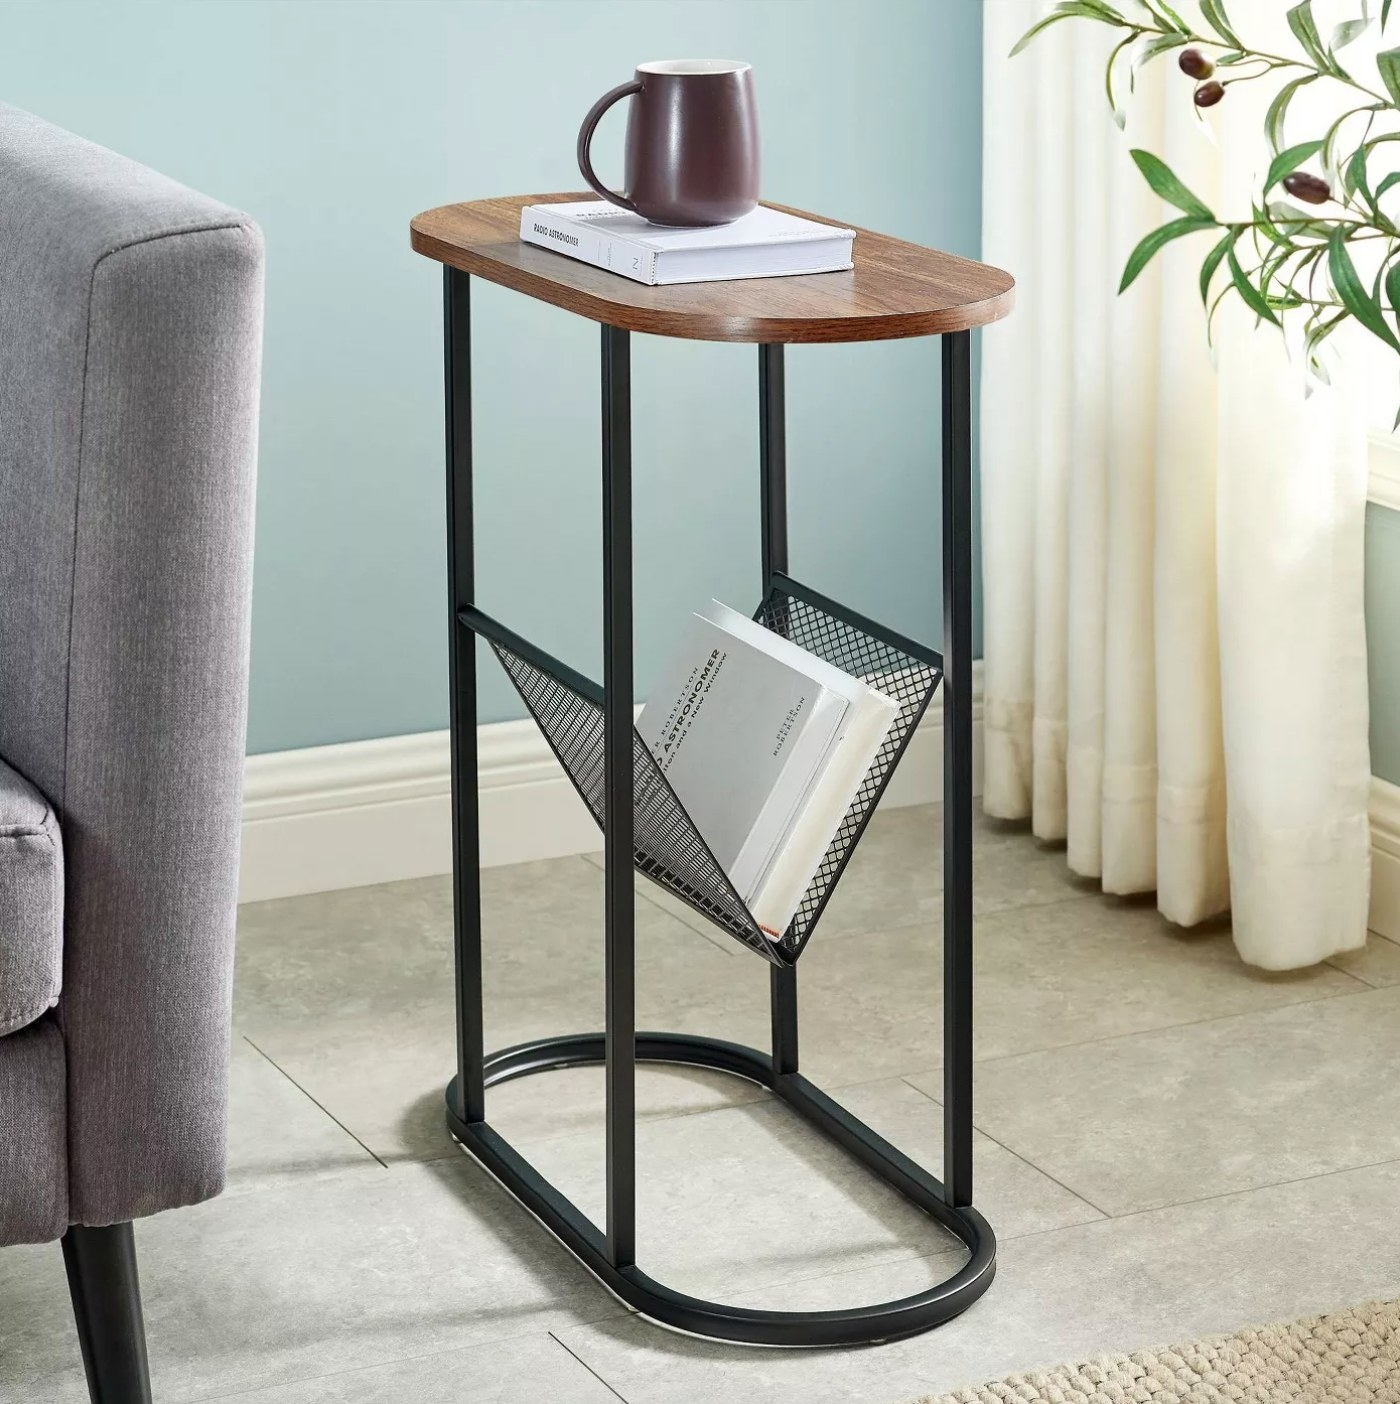 The accent end table